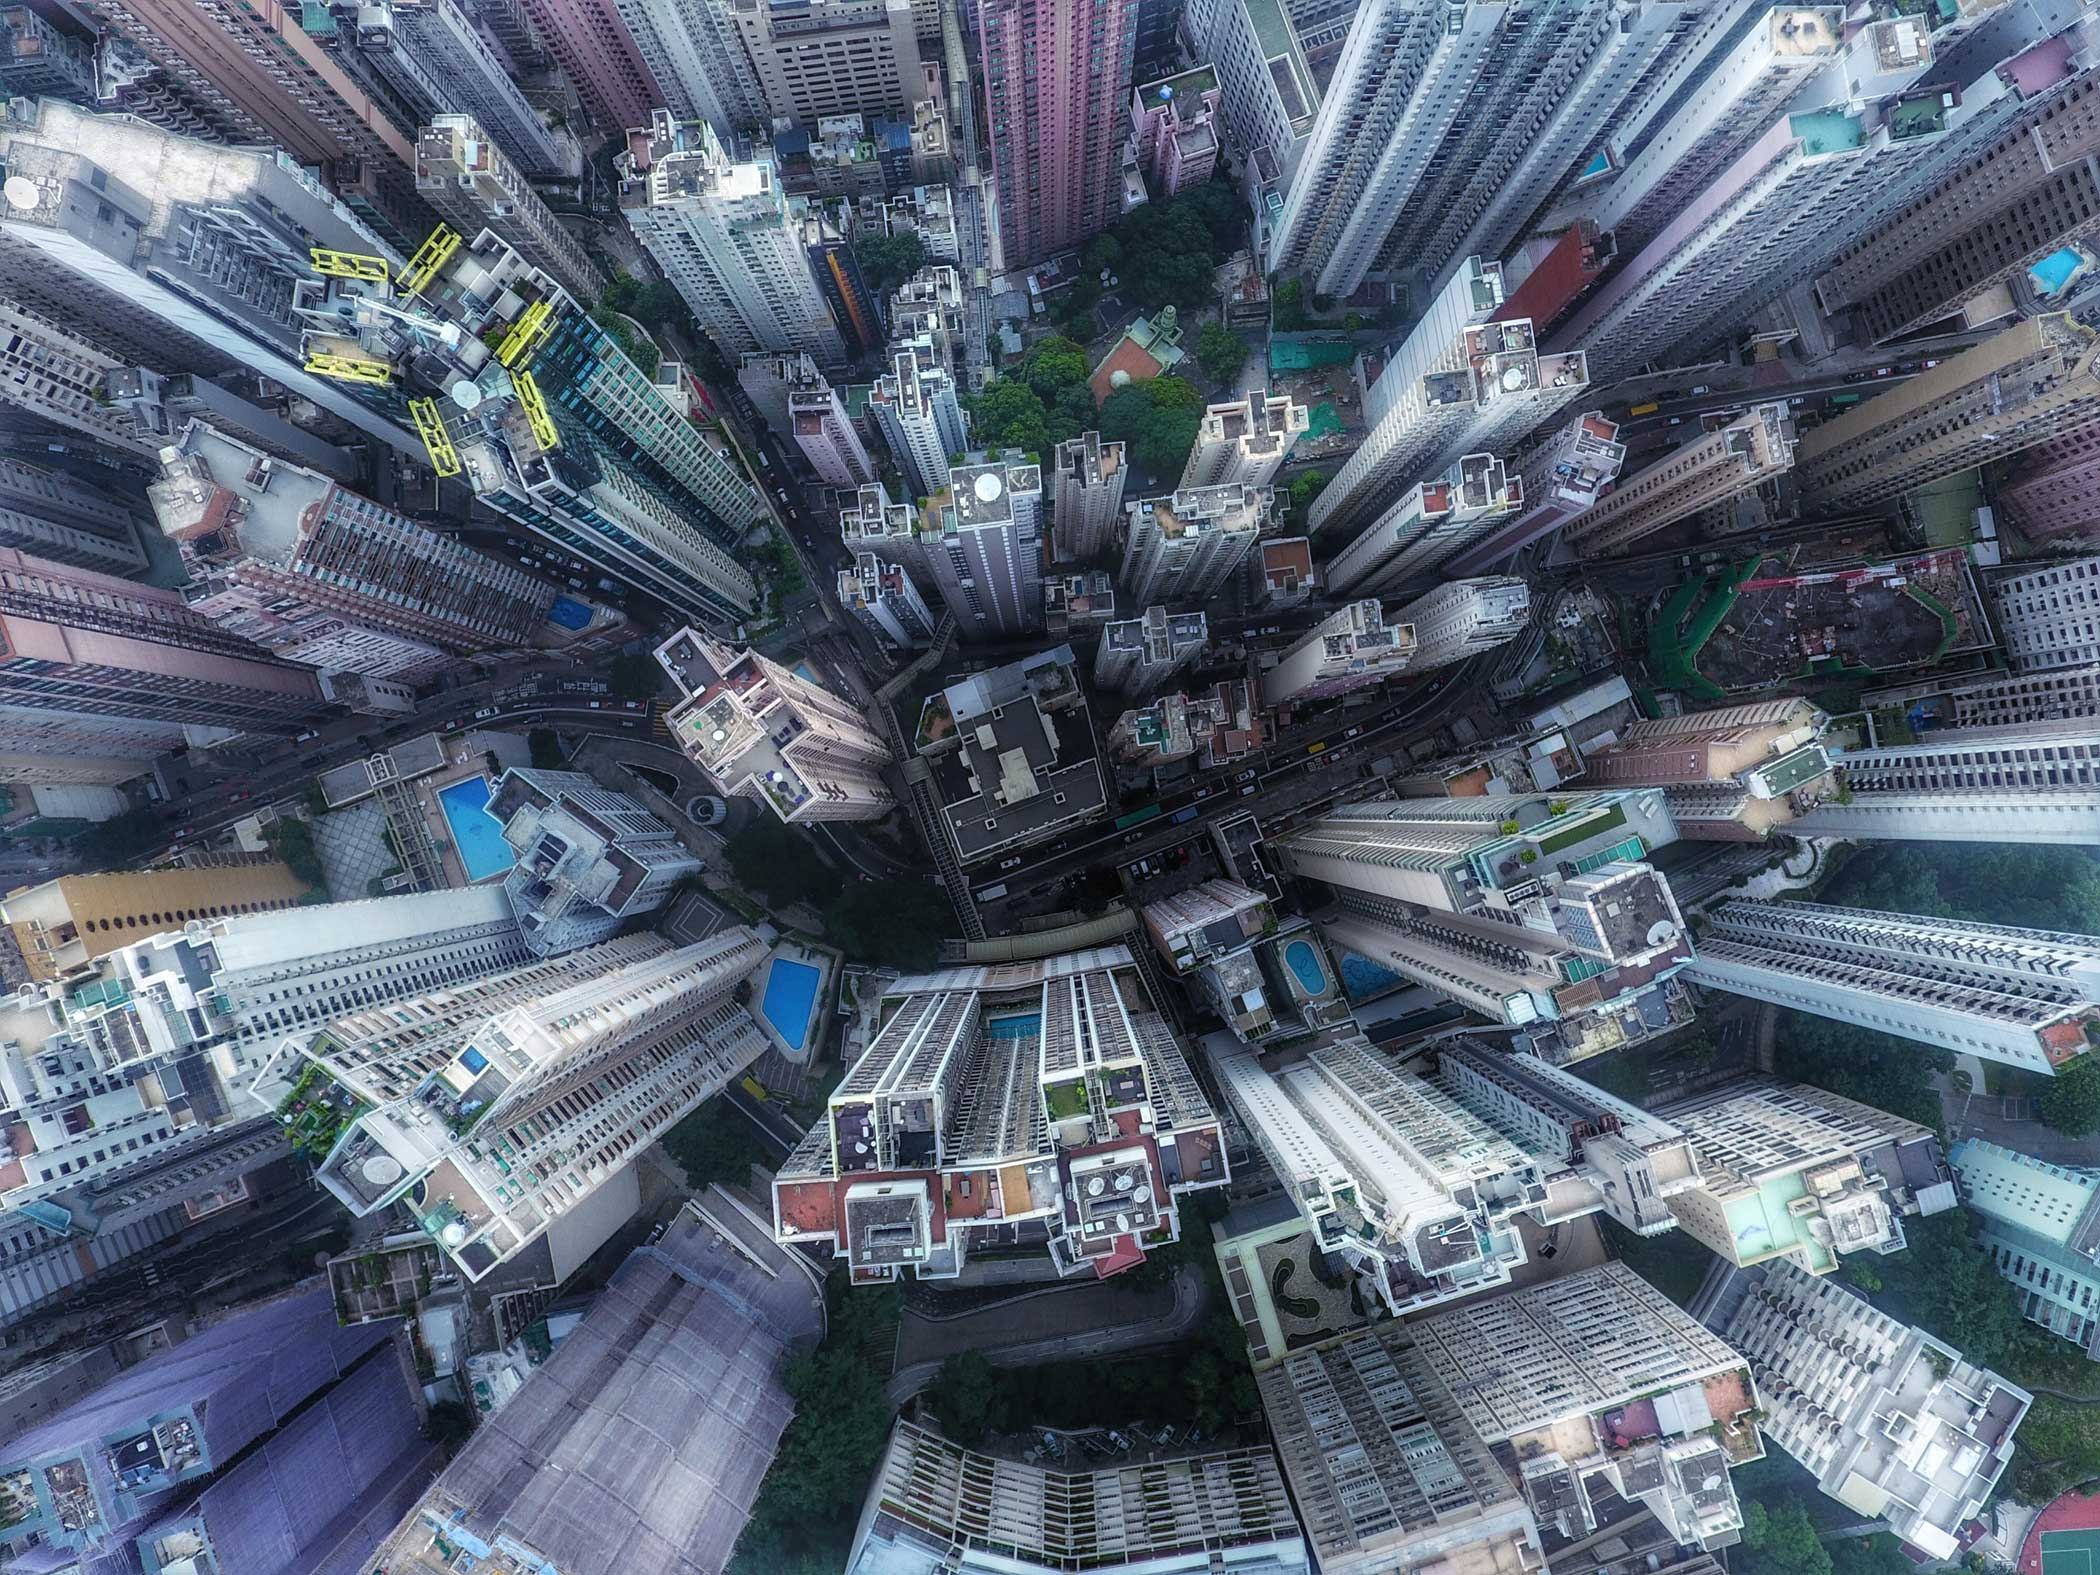 Over the streets of Hong Kong